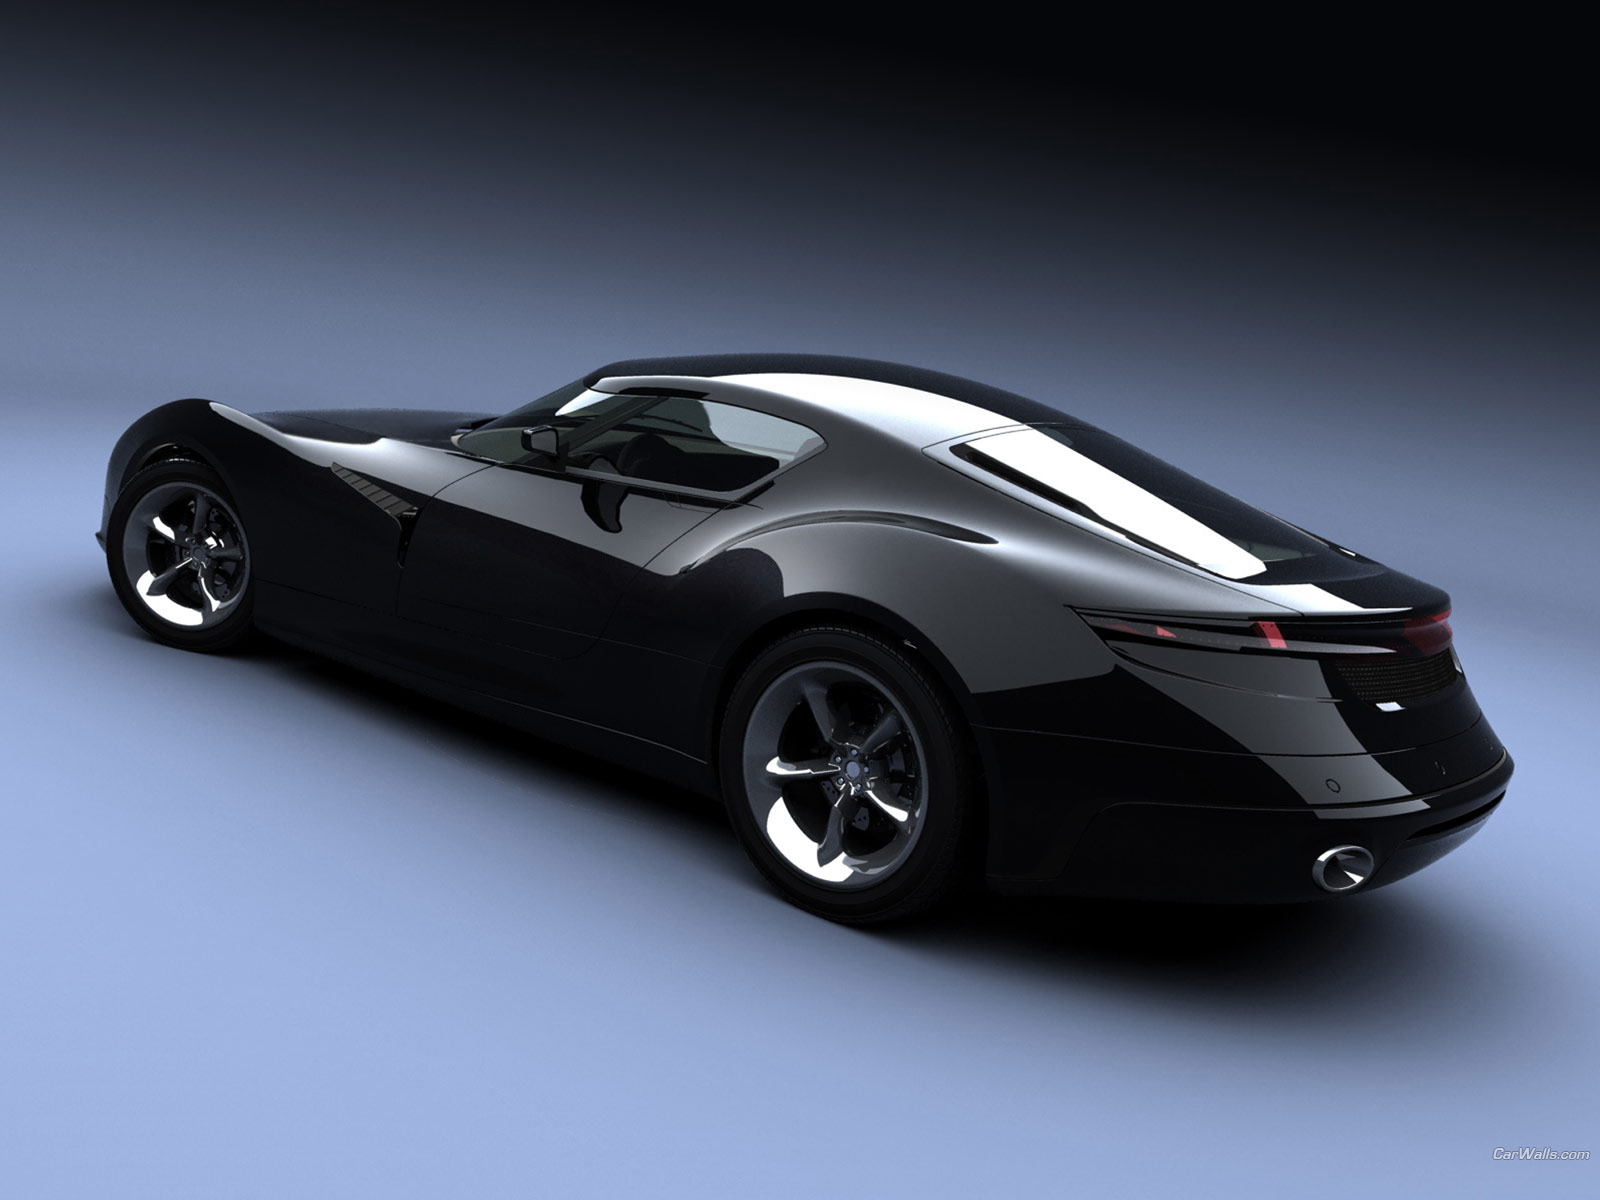 Wallpaper for Windows Vista, supercar wallpaper